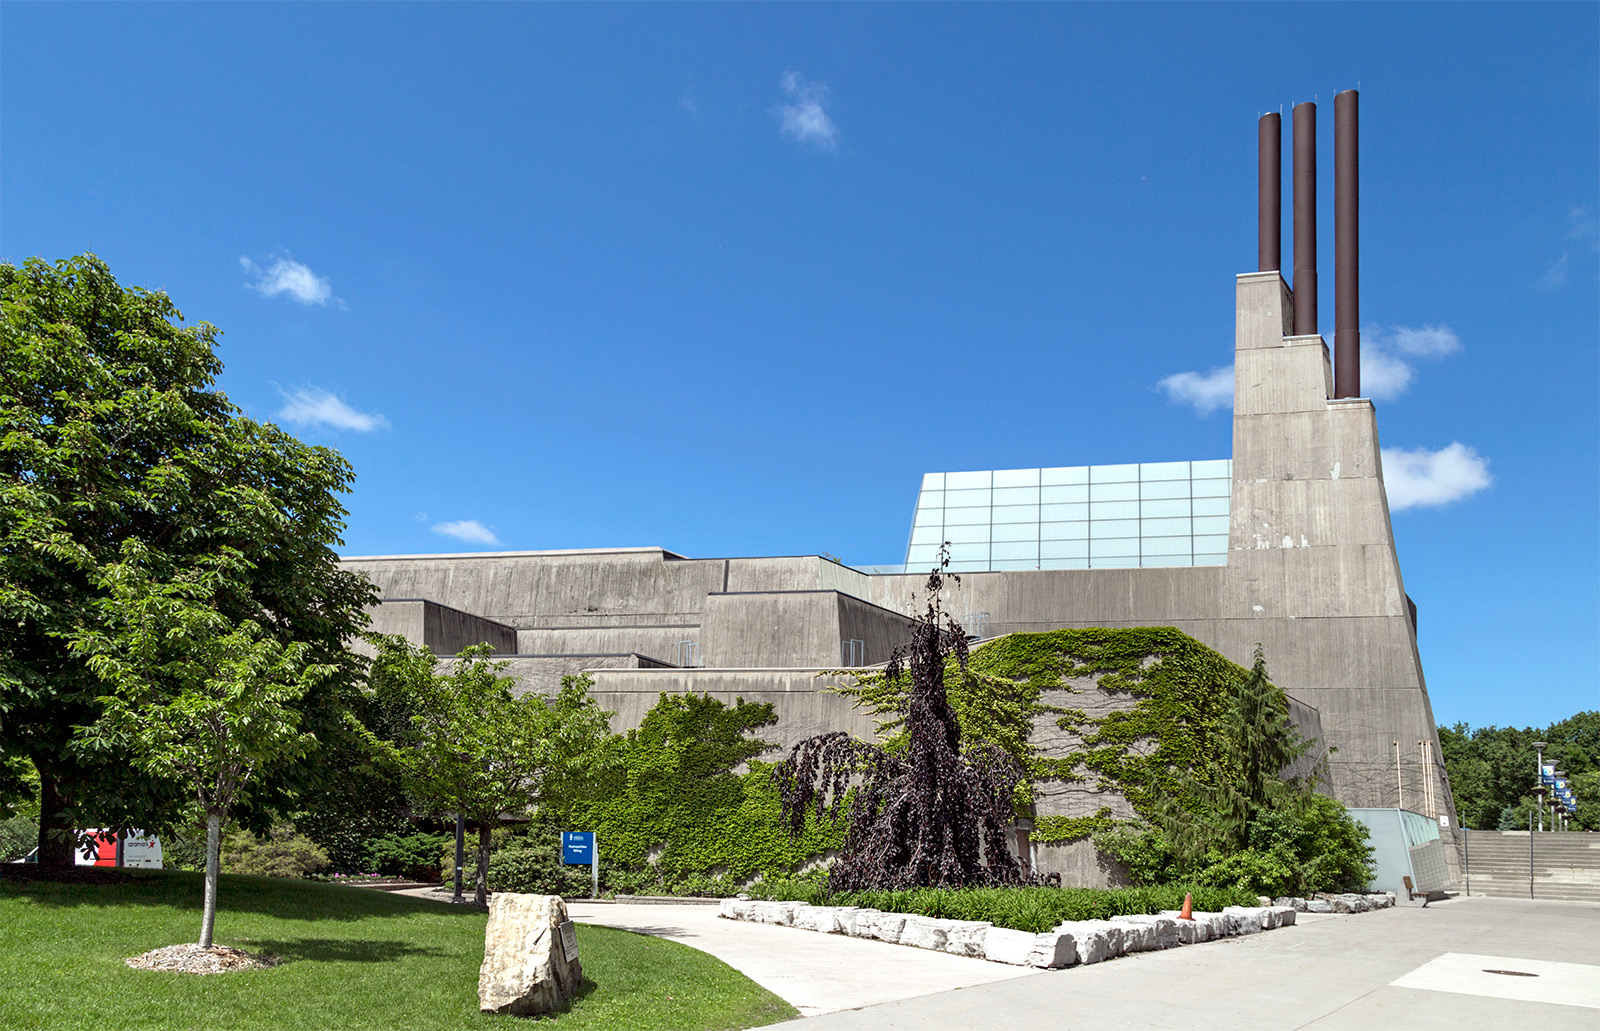 University of Toronto Scarborough | vikpahwa.com